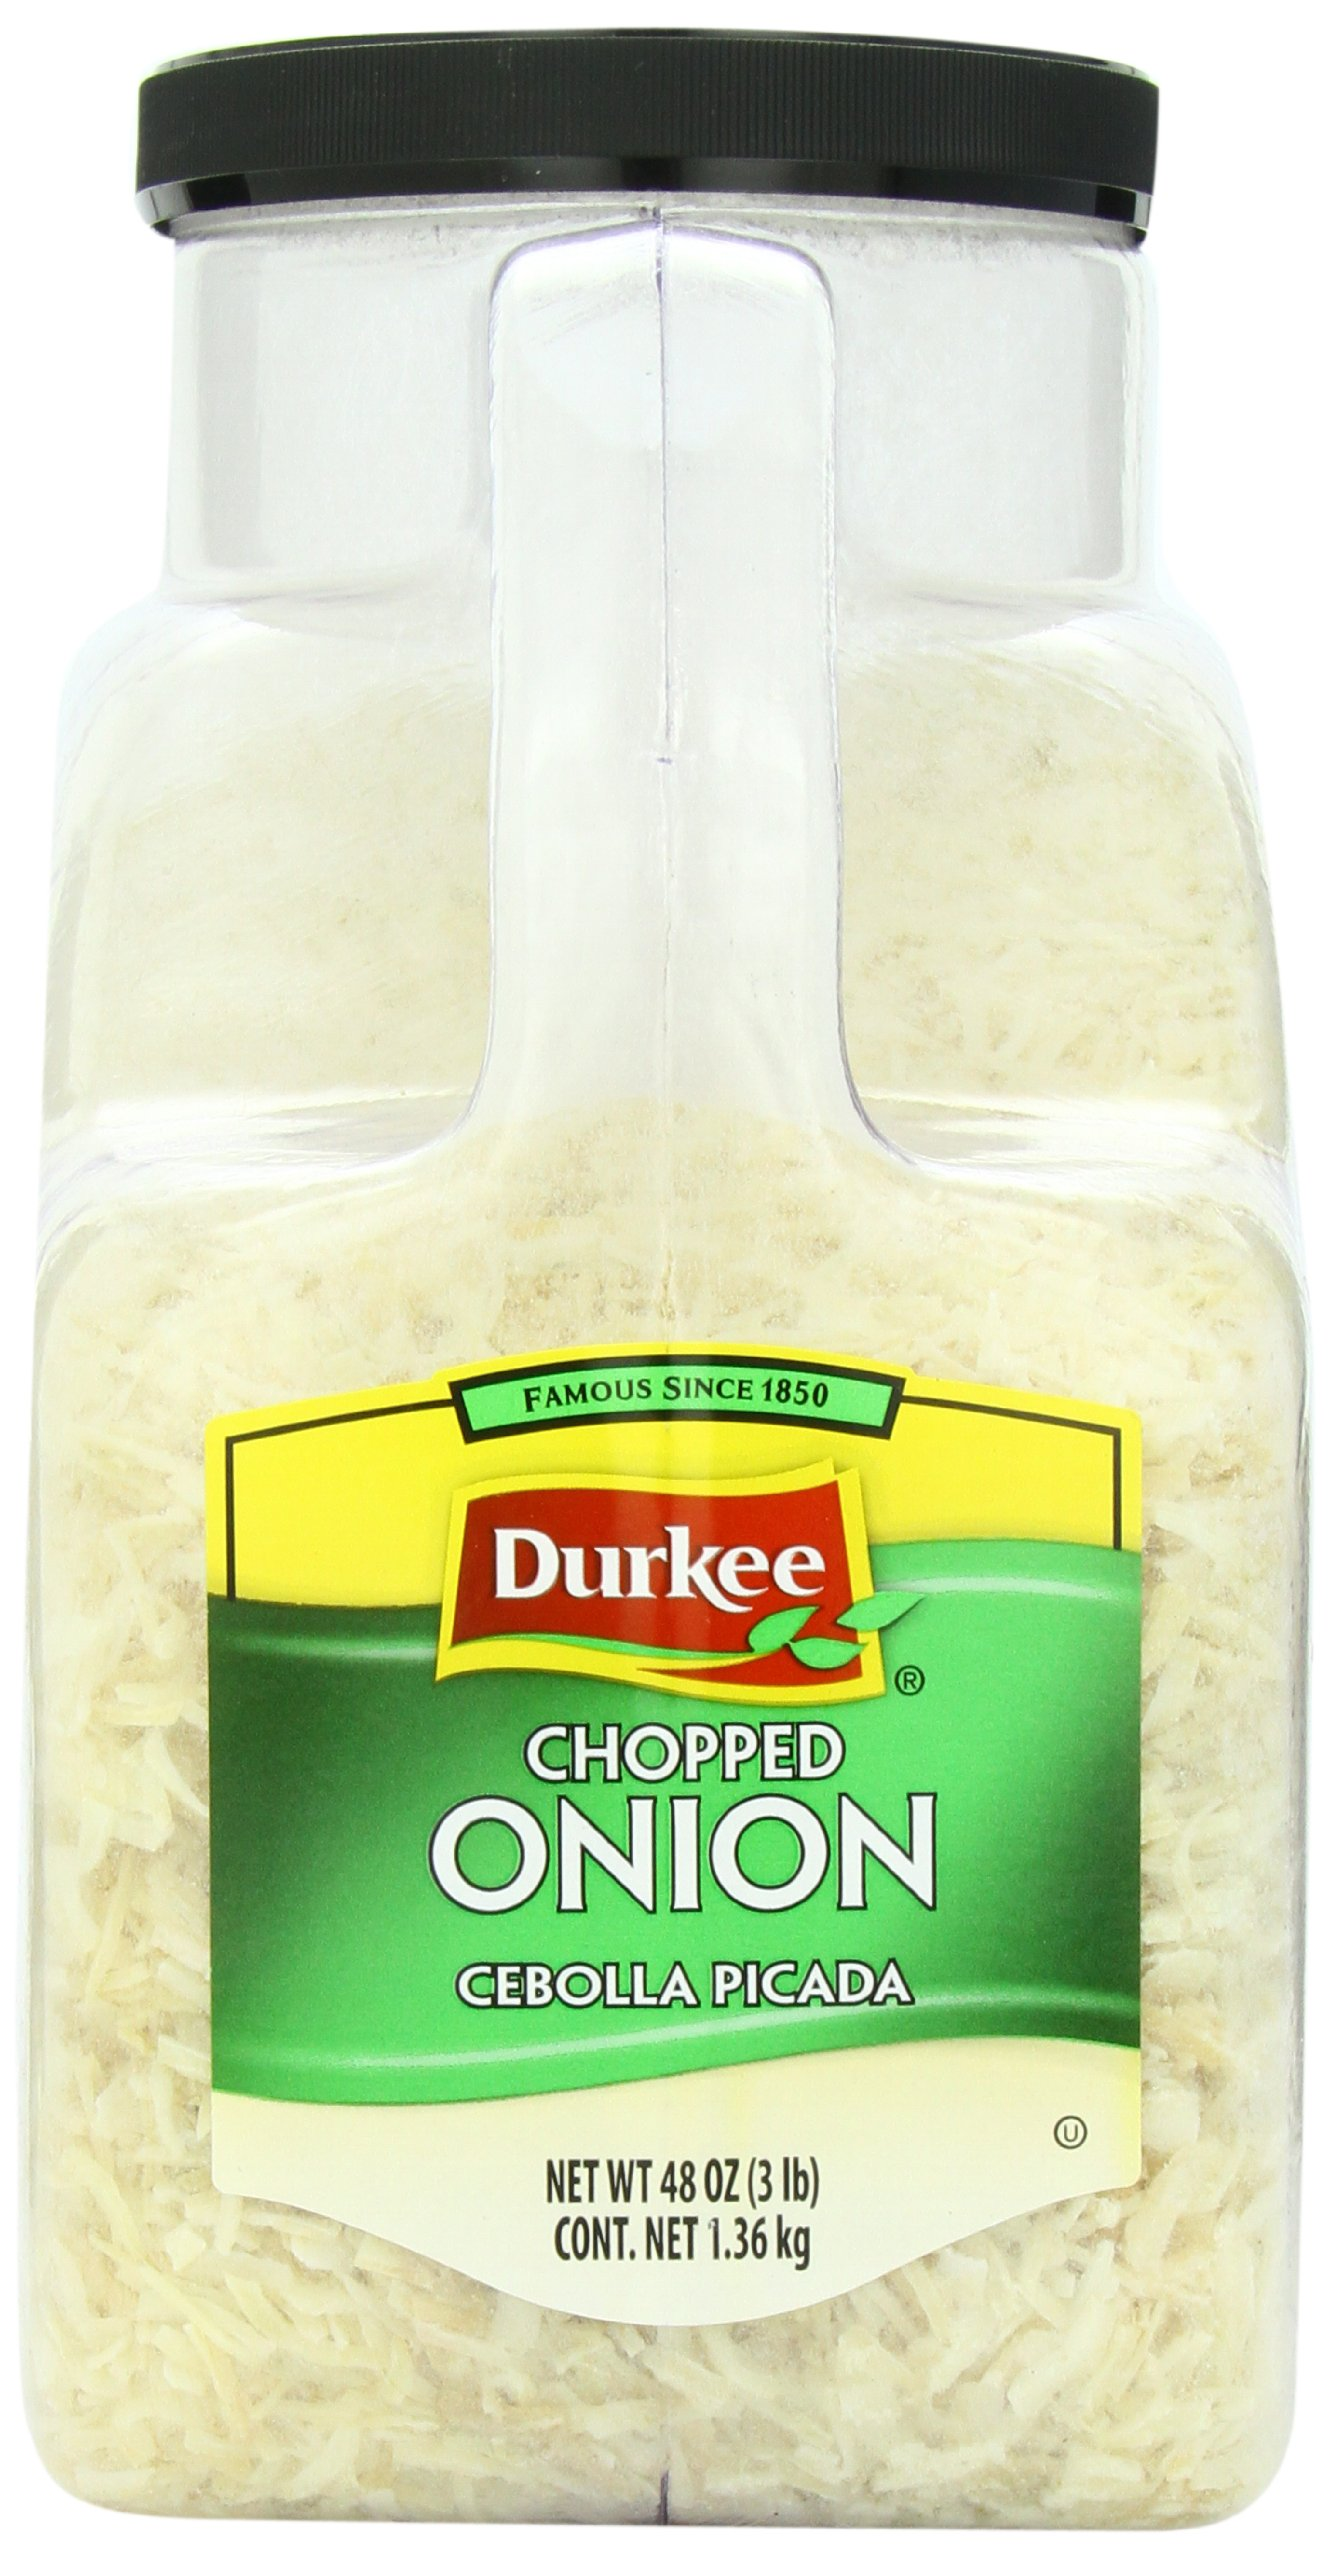 Durkee Chopped Onion, 3-Pound